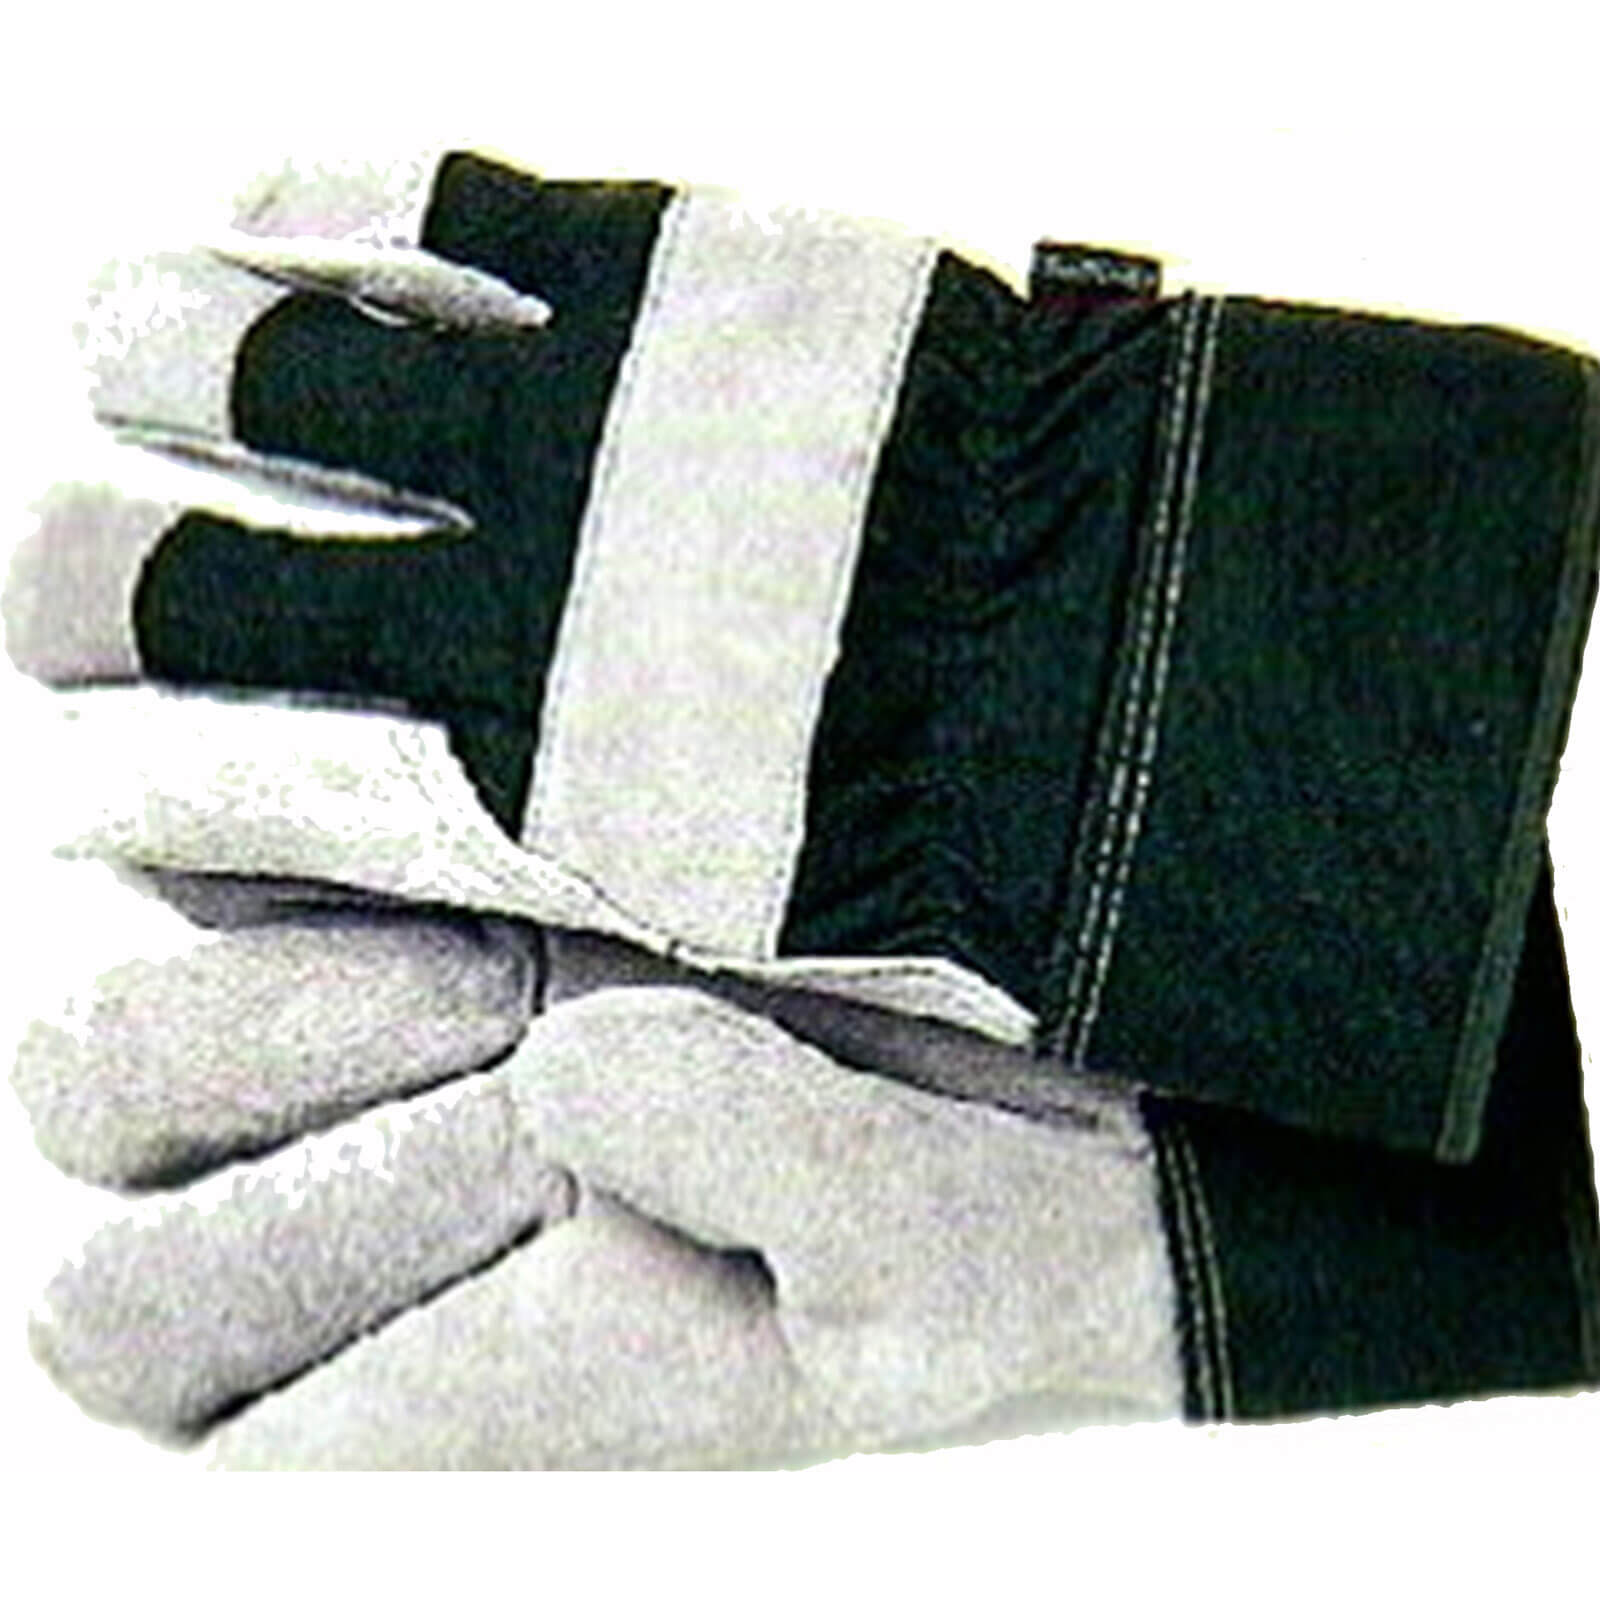 Town and Country Thermal Lined Leather Palm Green Glove One Size